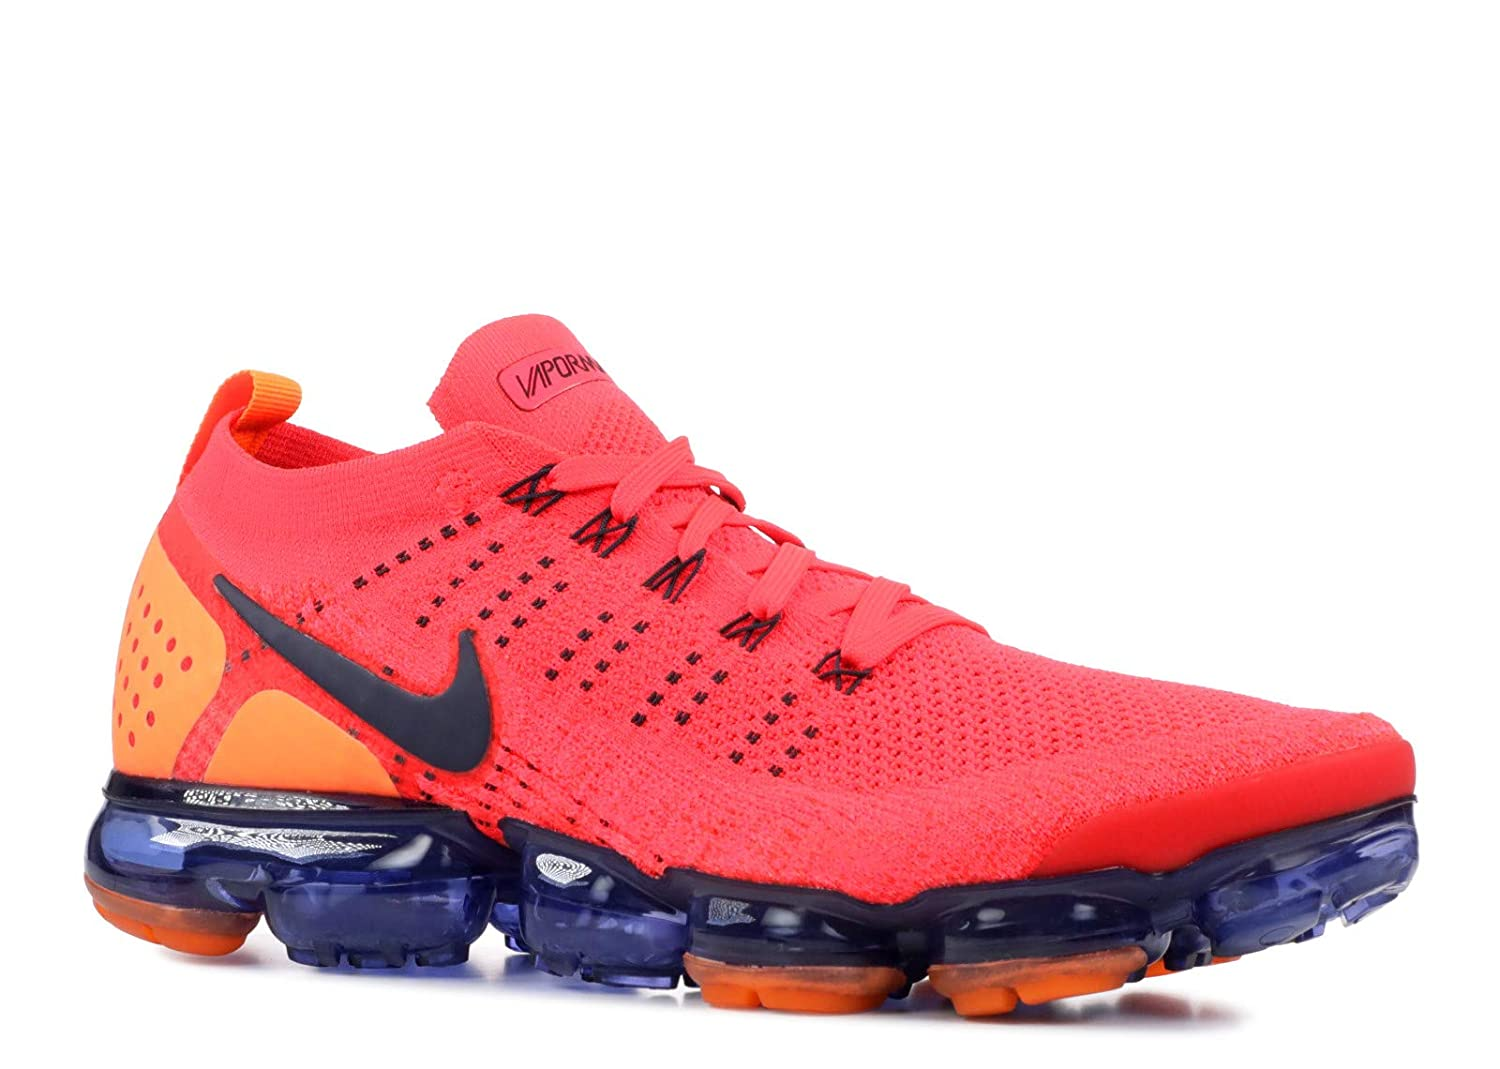 factory price 0c8d7 44078 Nike Air Vapormax Flyknit 2 'Red Orbit' - Ar5406-600 - Size 14